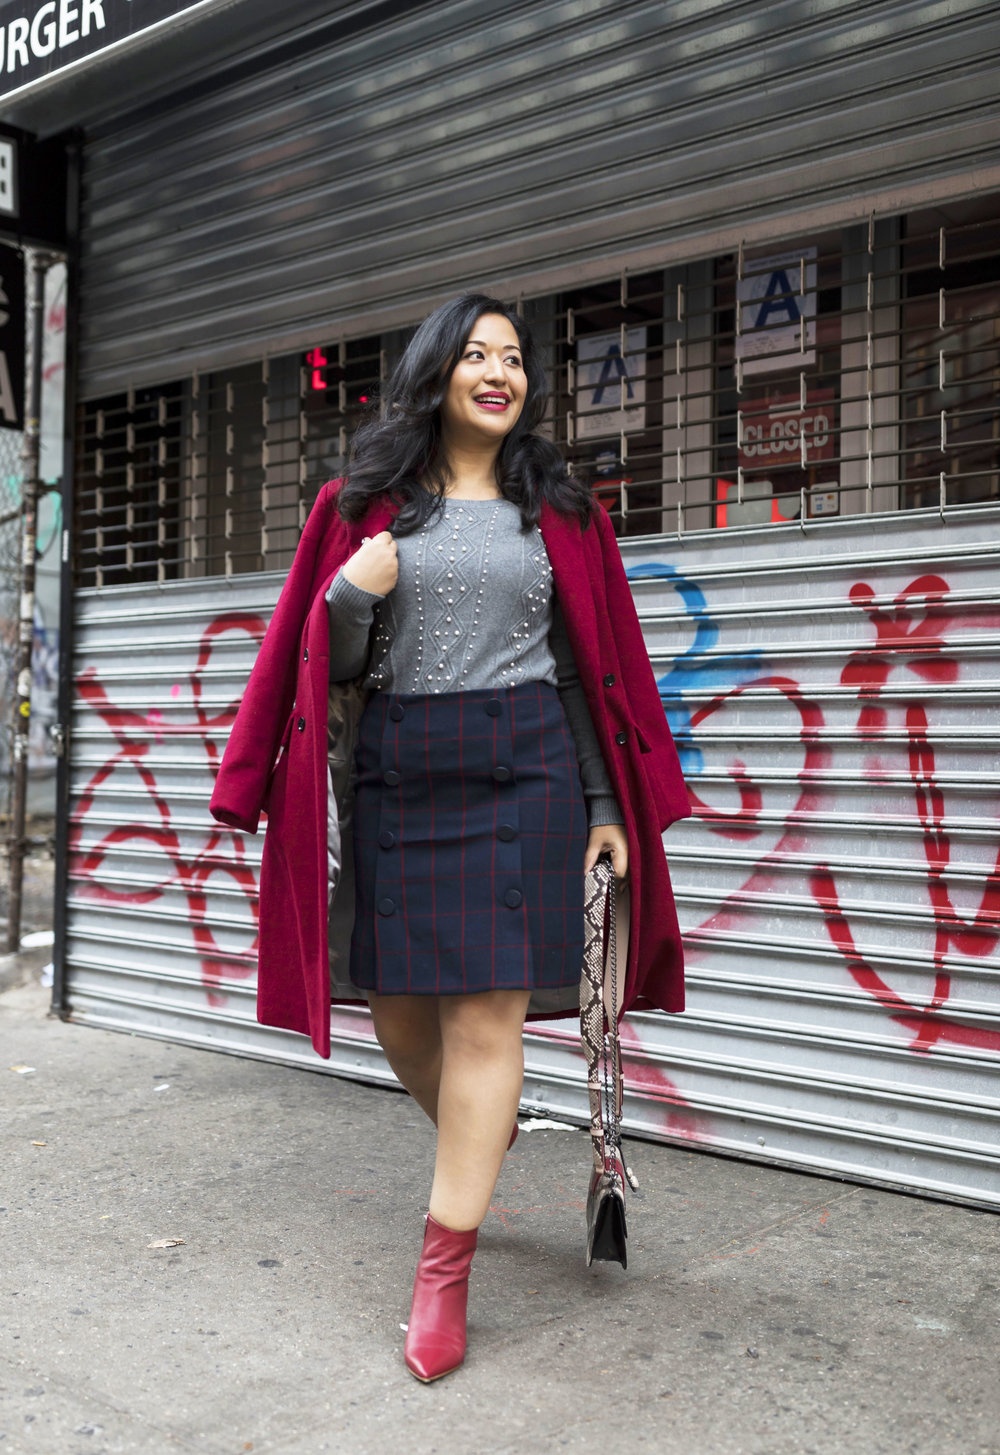 Krity S x Preppy Fall Outfit x Red Coat7.jpg